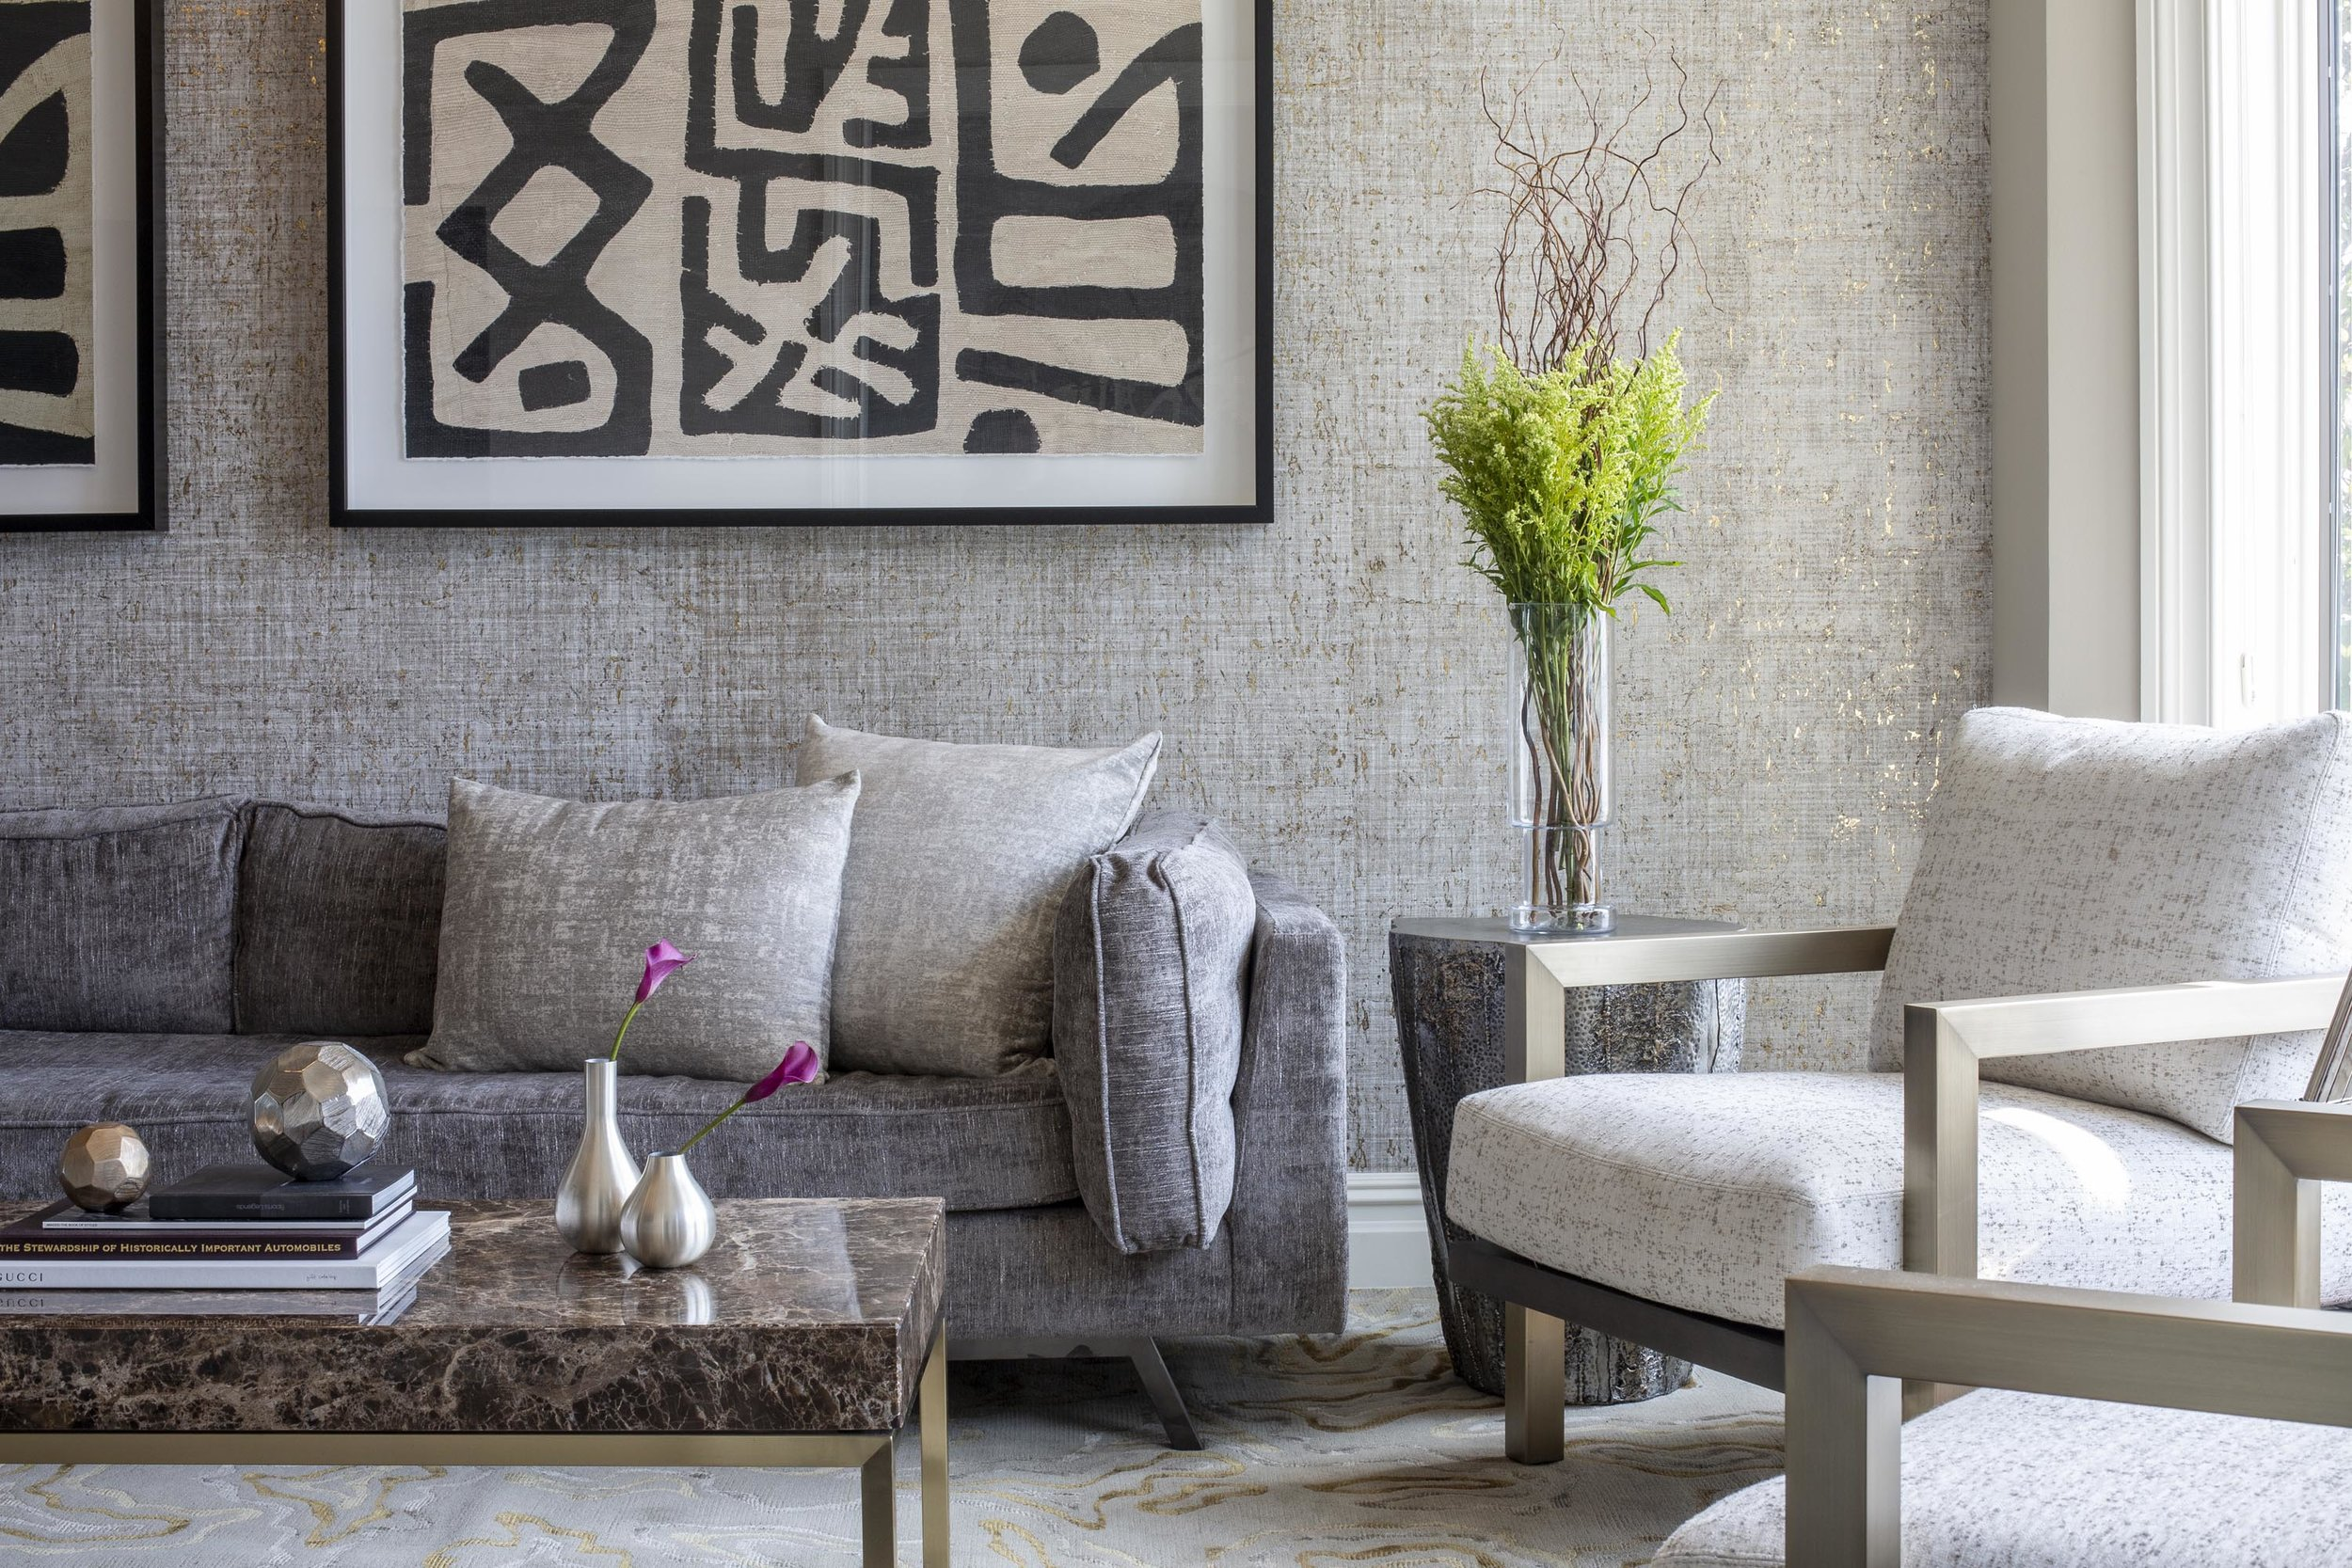 Living room with sofa, armchairs, center table, indoor plant modern wallpaper and artwork on the wall